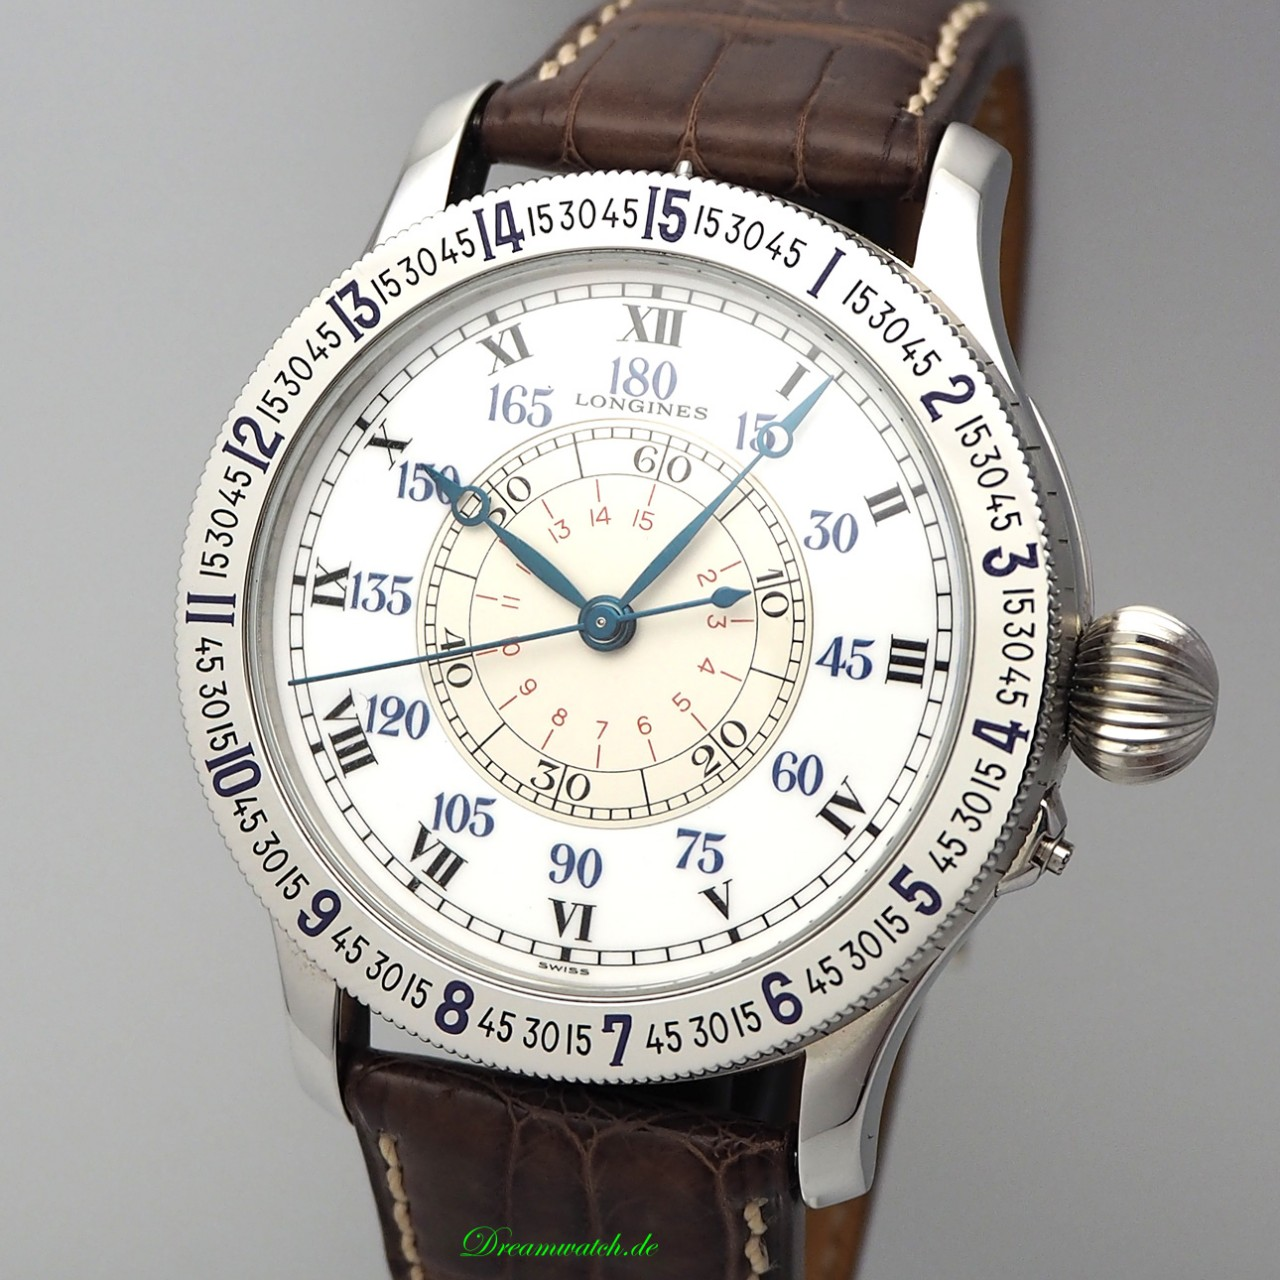 Longines Lindbergh Limited Edtion 75th Anniversary L2.638.4 B&P unworn